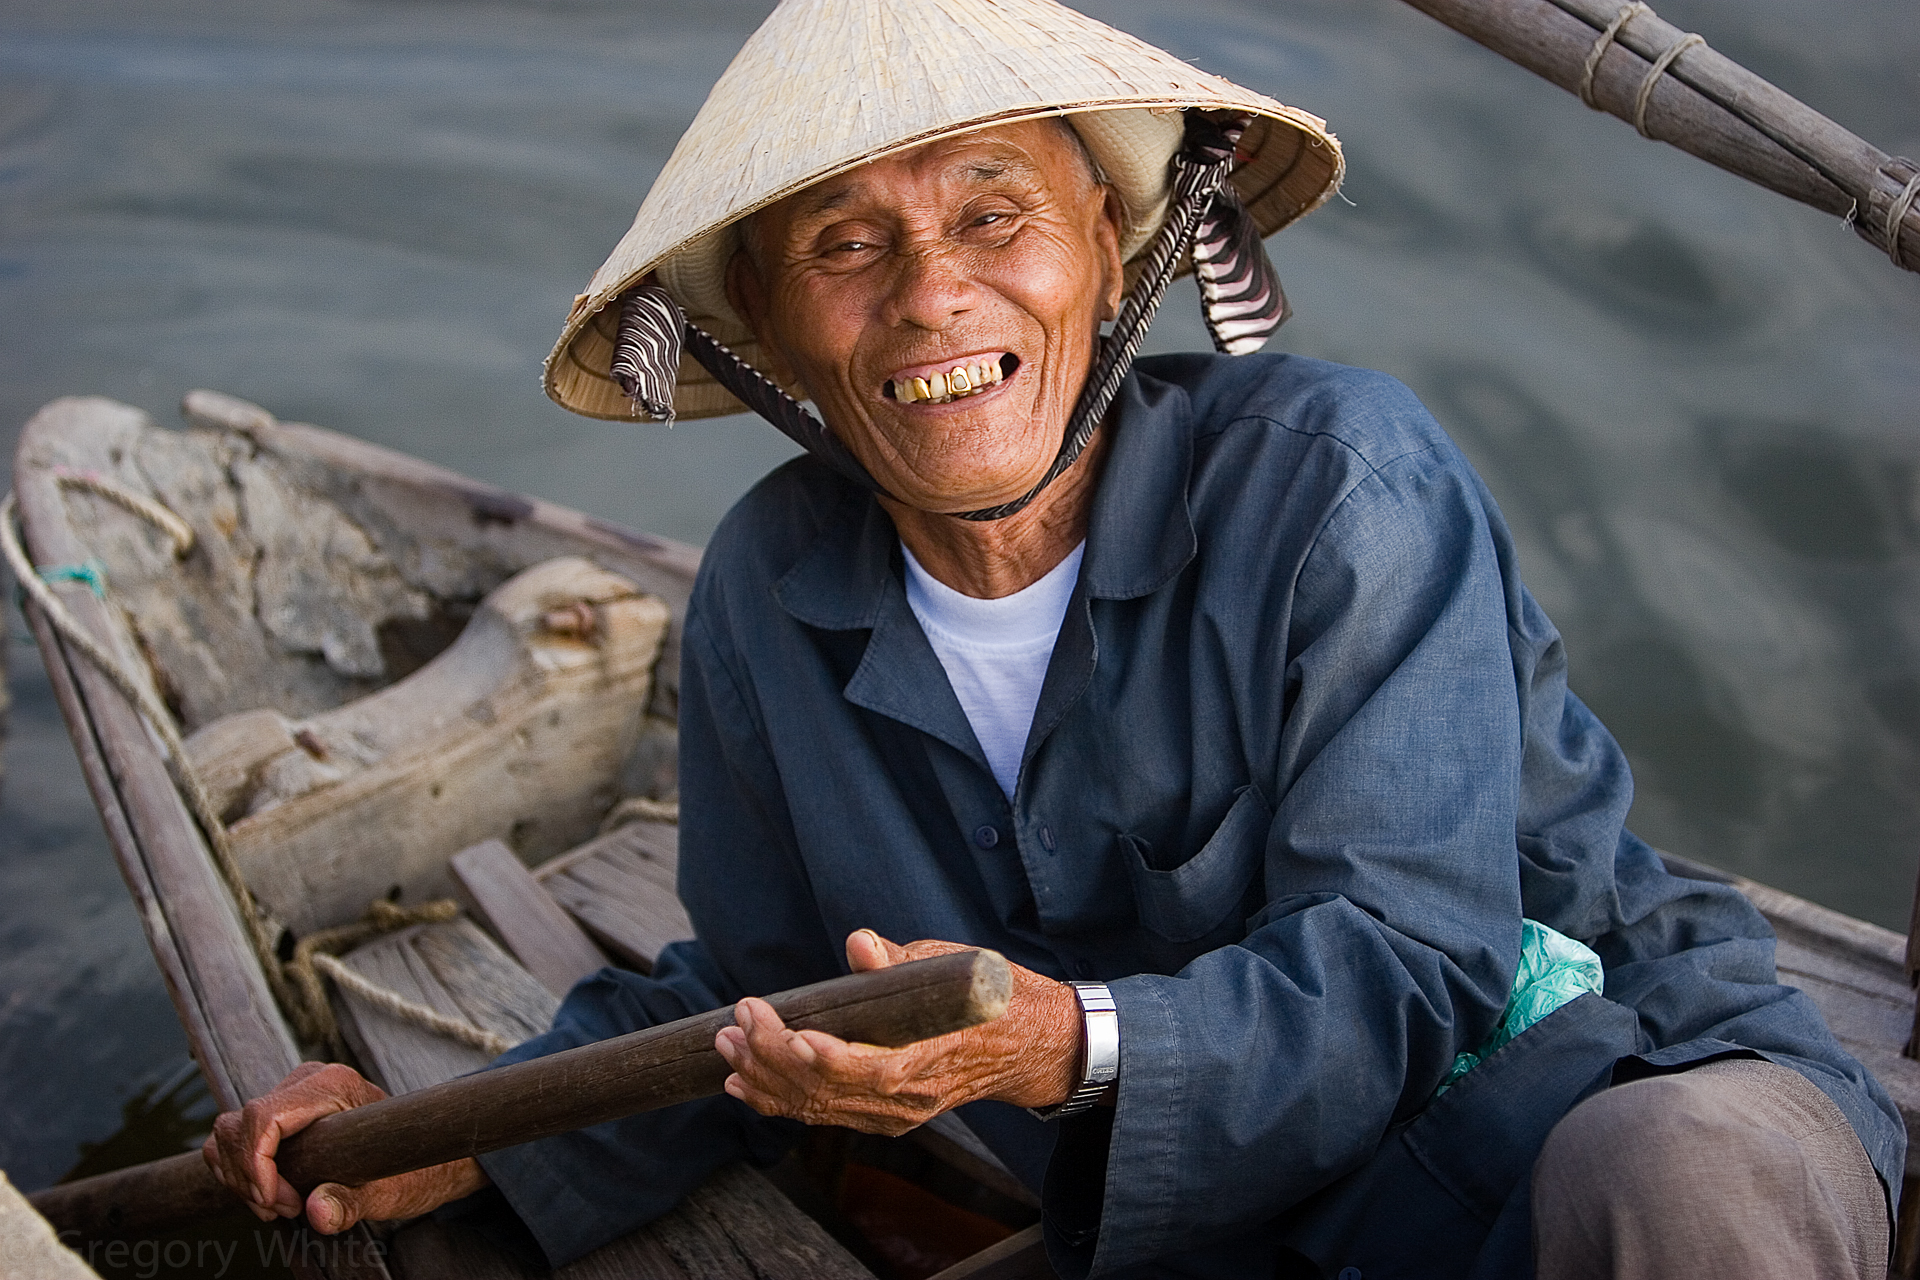 A fisherman shows his gold front tooth in Hoi An, Vietnam.